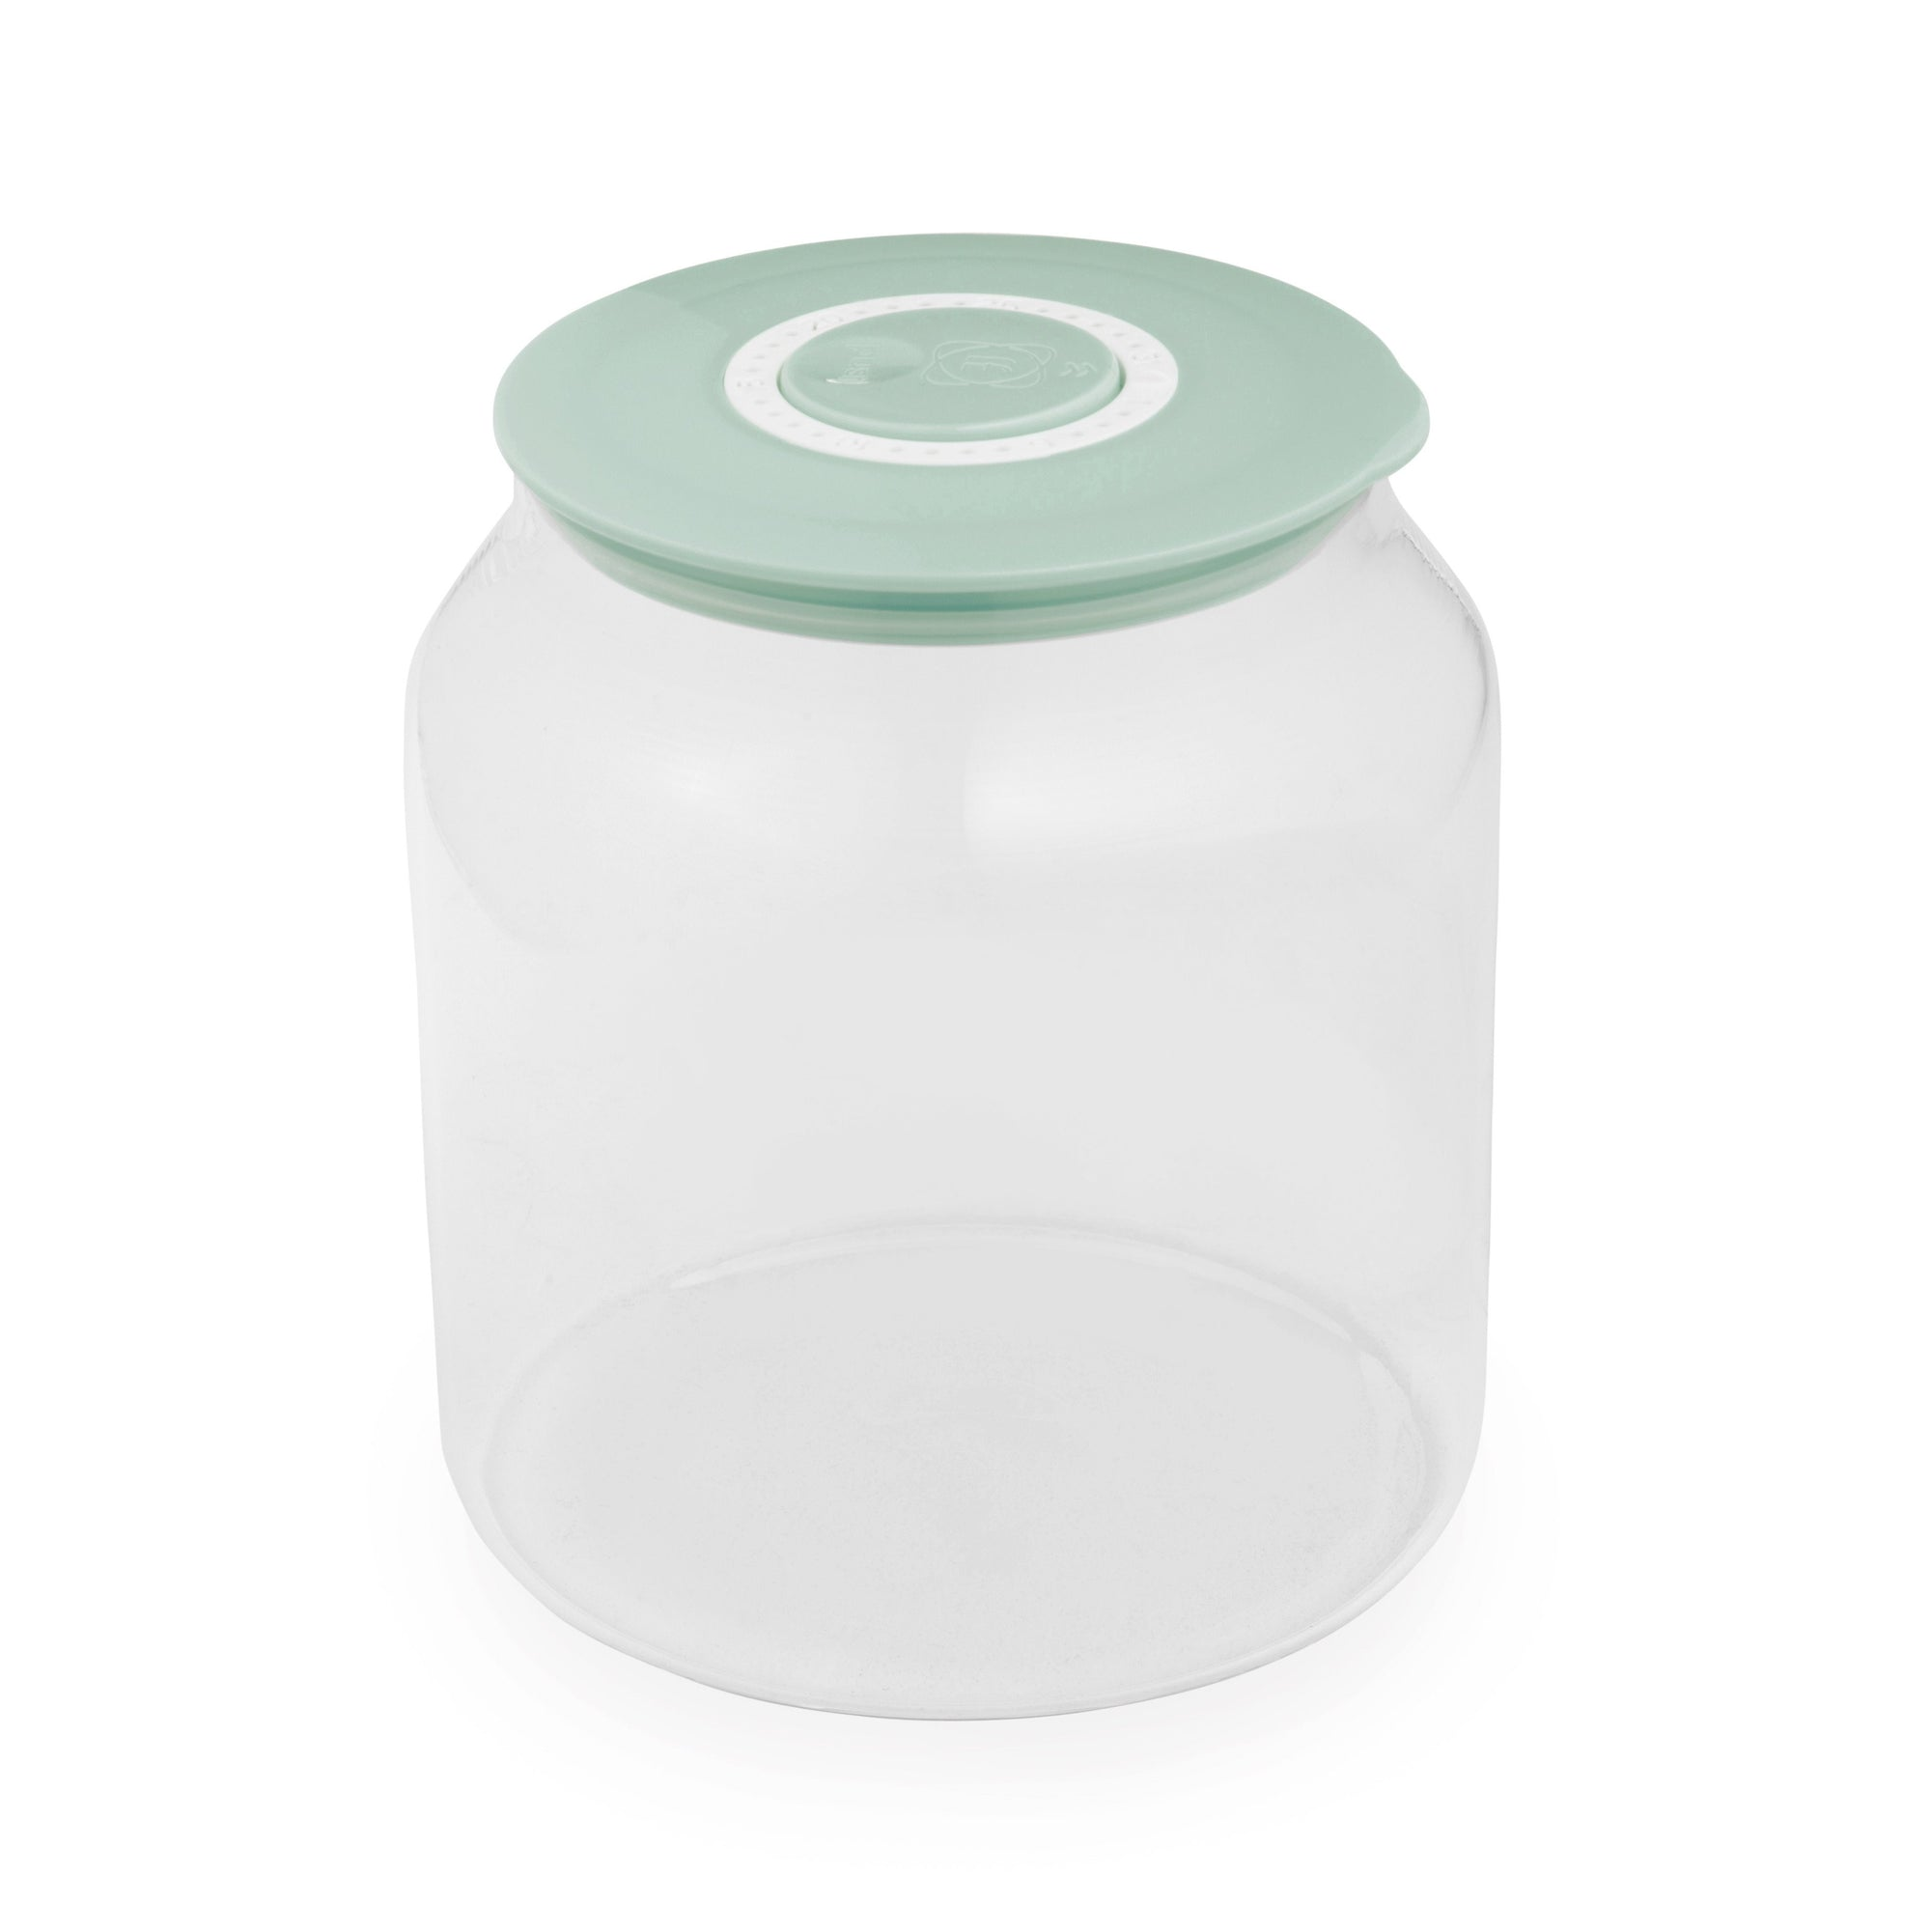 Luvele 1.5 Litre | (1.6qt.) Glass Yogurt Container | Compatible with Pure Plus Yogurt Maker